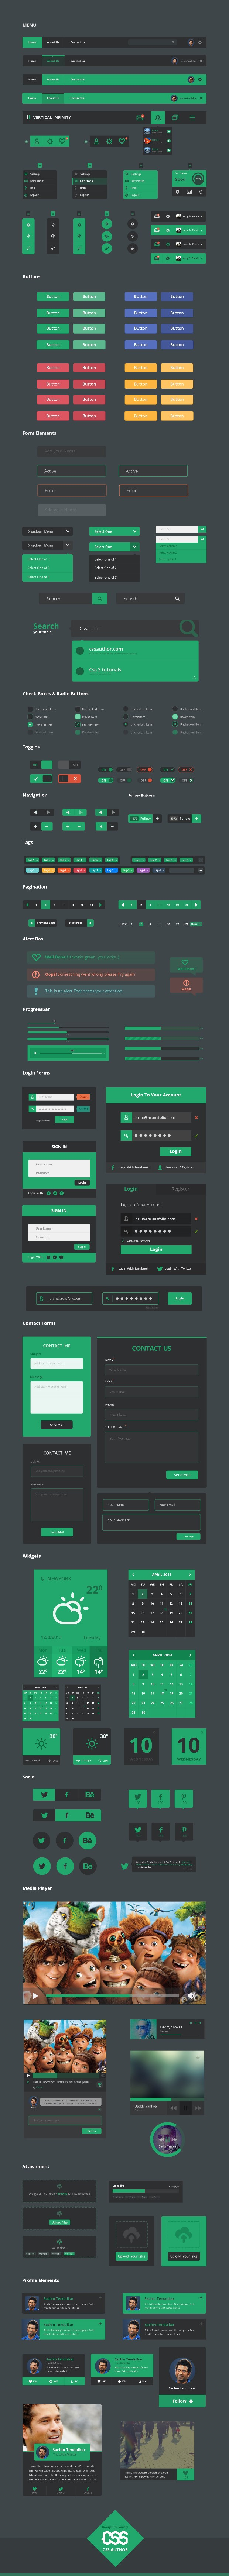 free_ui_kits_for_designers_21